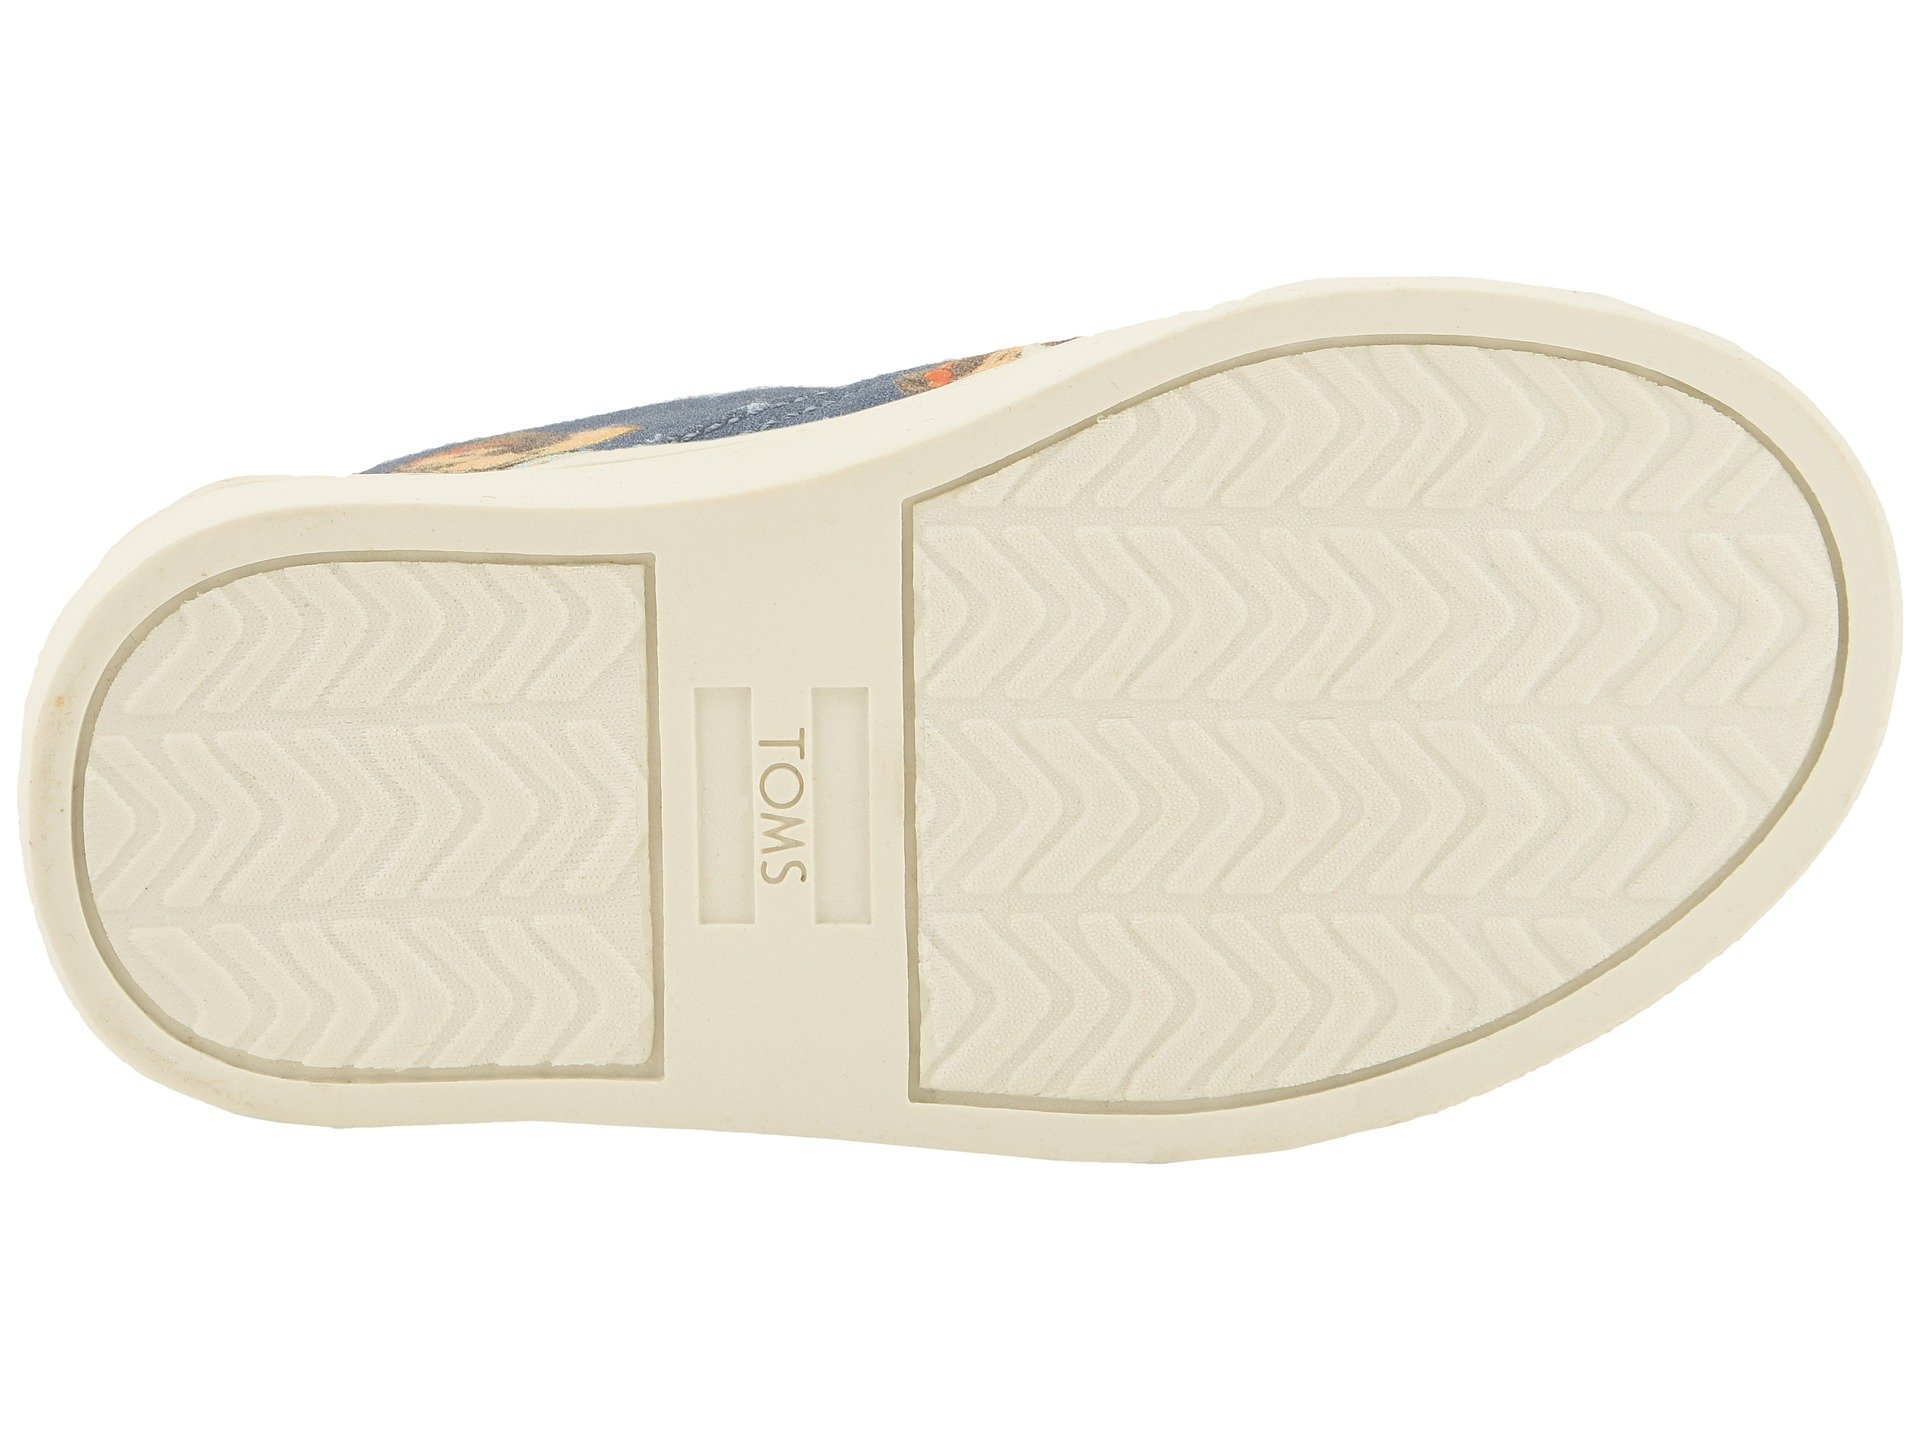 TOMS Girl's, Luca Slip on Shoes Blue 4 M by TOMS Kids (Image #4)